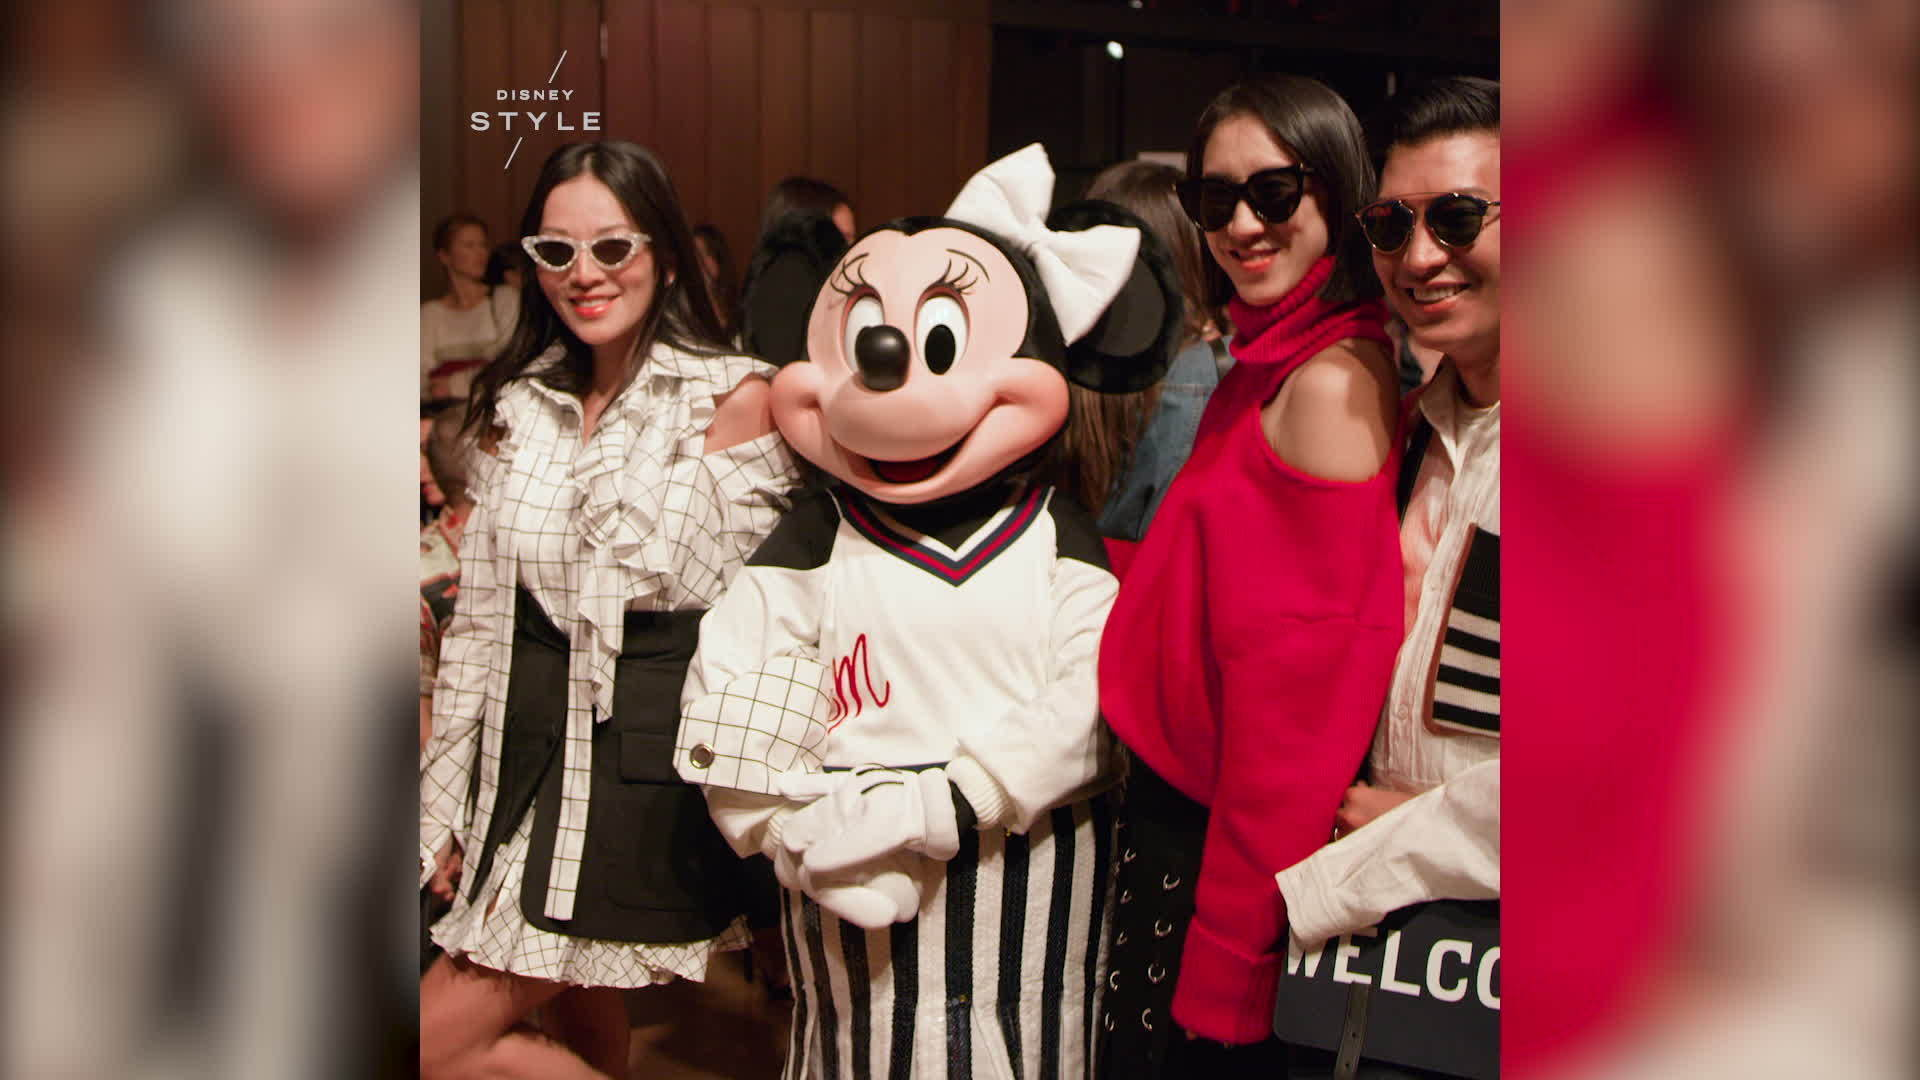 Minnie Mouse Gets a New Designer Dress for New York Fashion Week | Disney Style